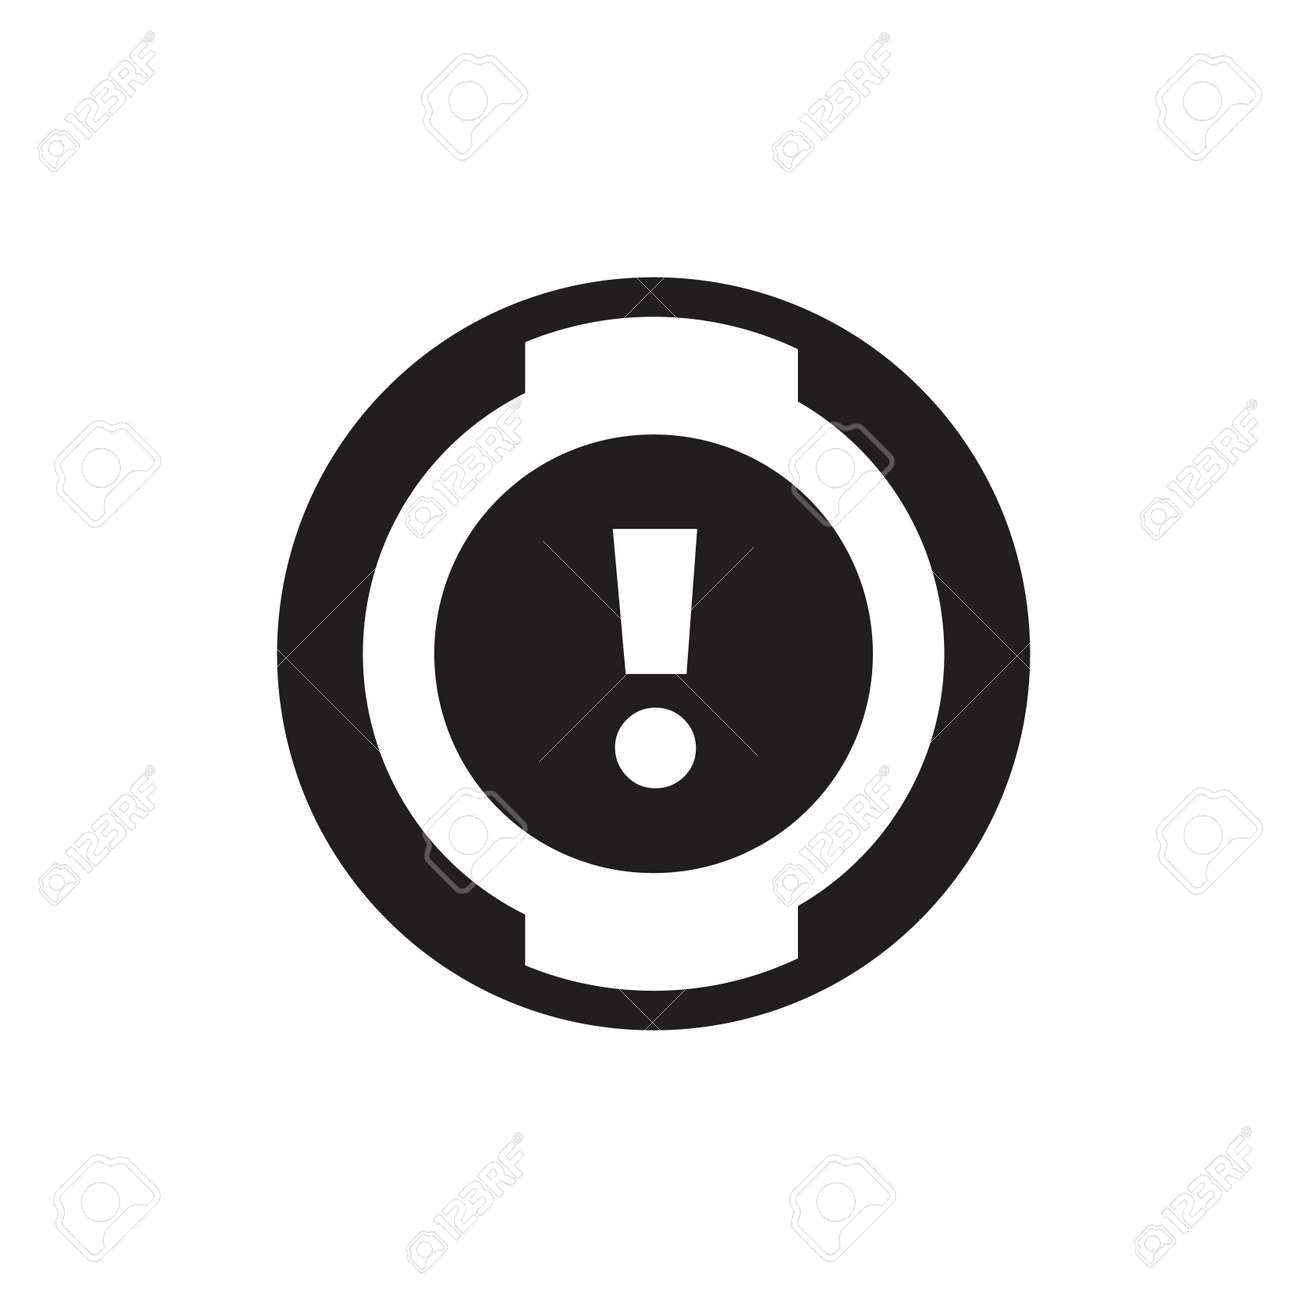 Car Dashboard Icon Royalty Free Cliparts Vectors And Stock - Car image sign of dashboardcar dashboard icons stock images royaltyfree imagesvectors